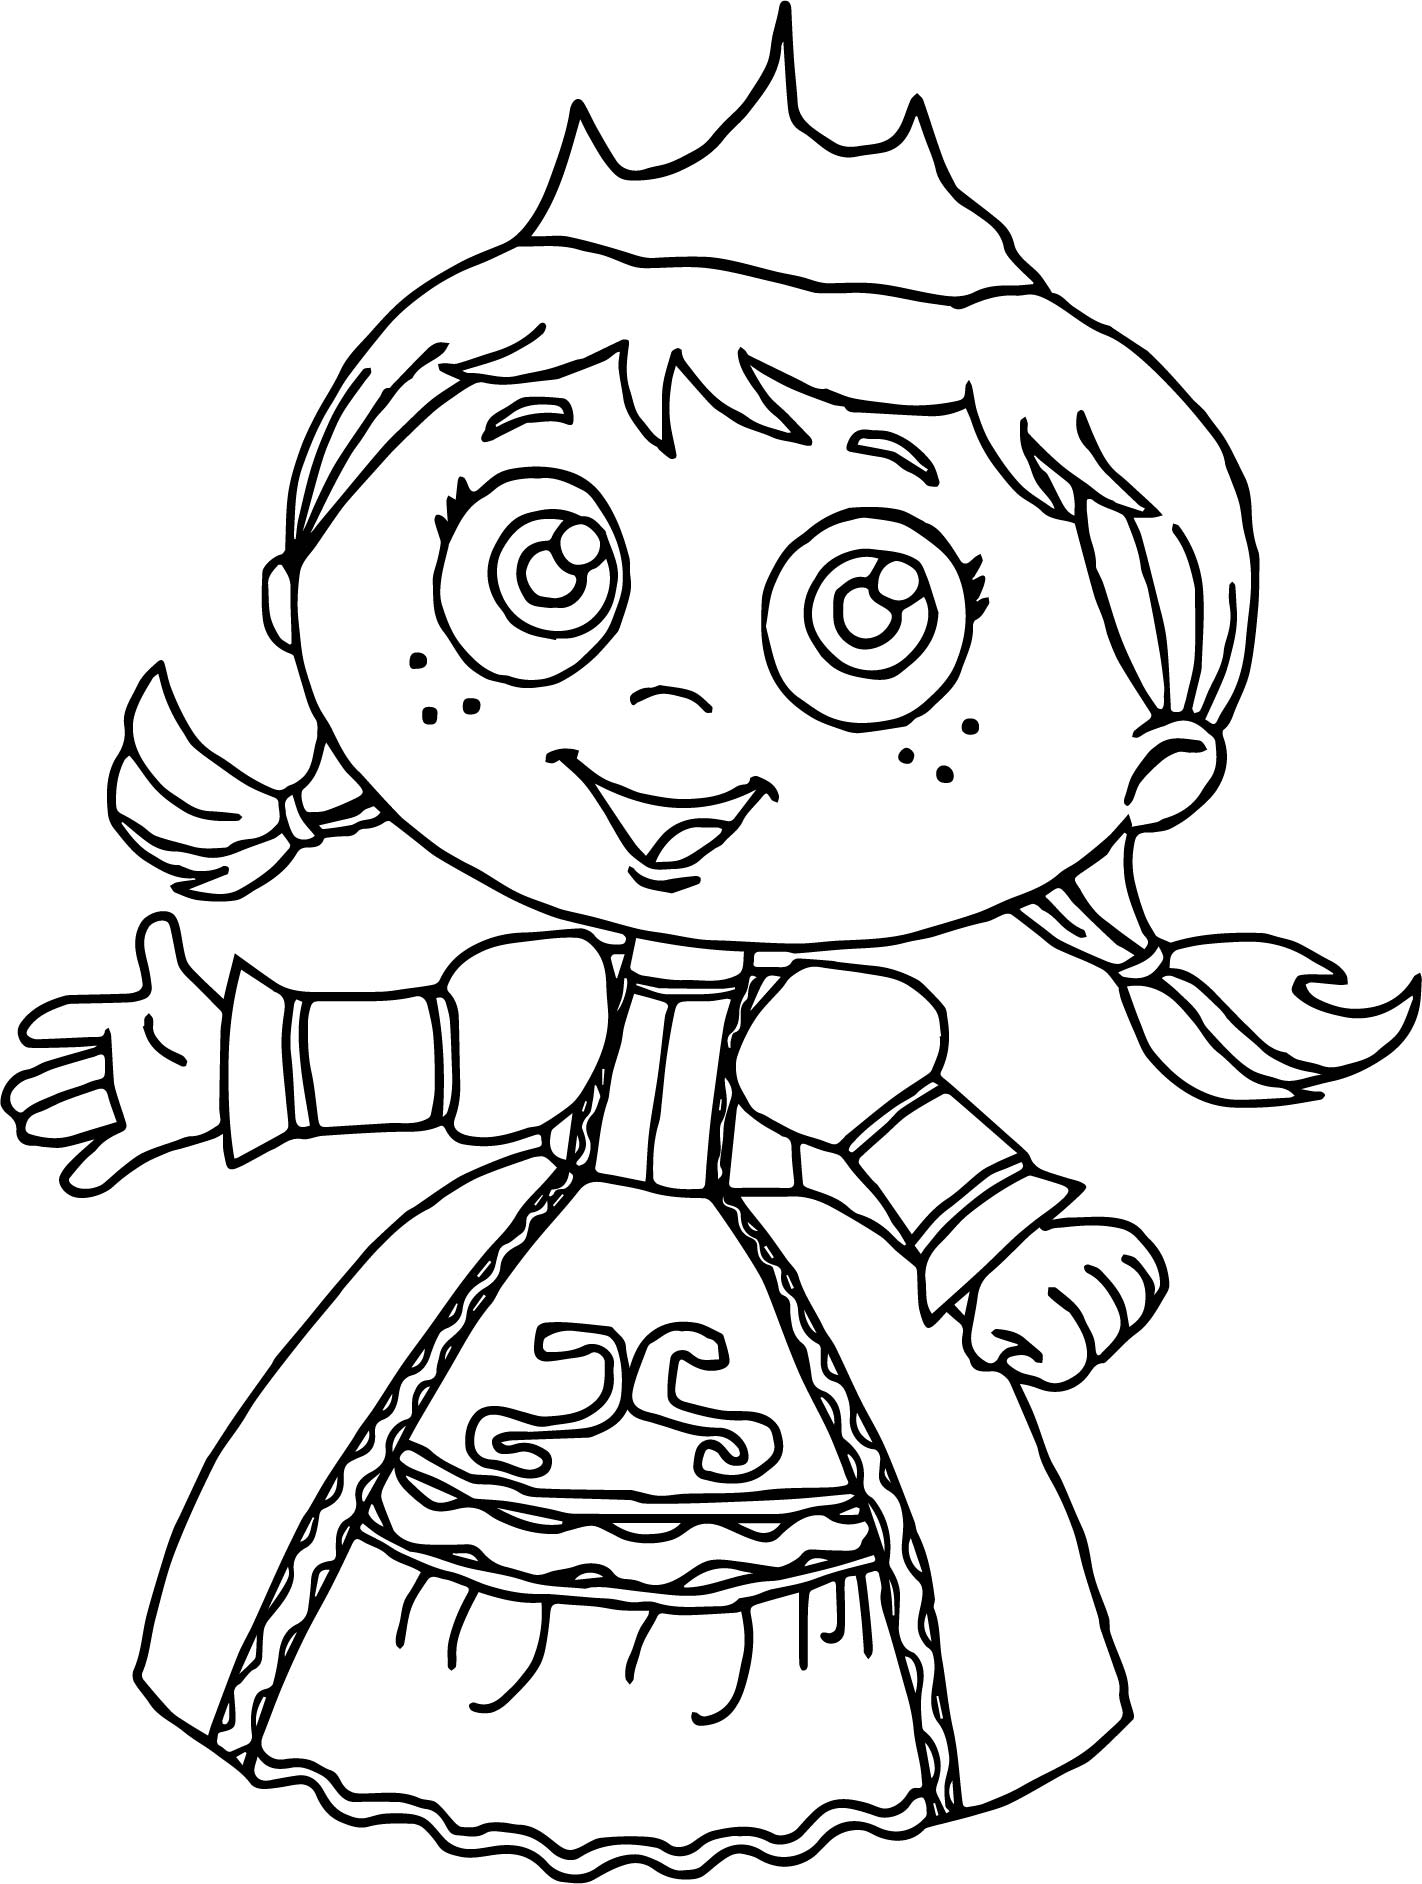 Super why coloring pages wonder red ~ Princess Red Super Why Coloring Page | Wecoloringpage.com